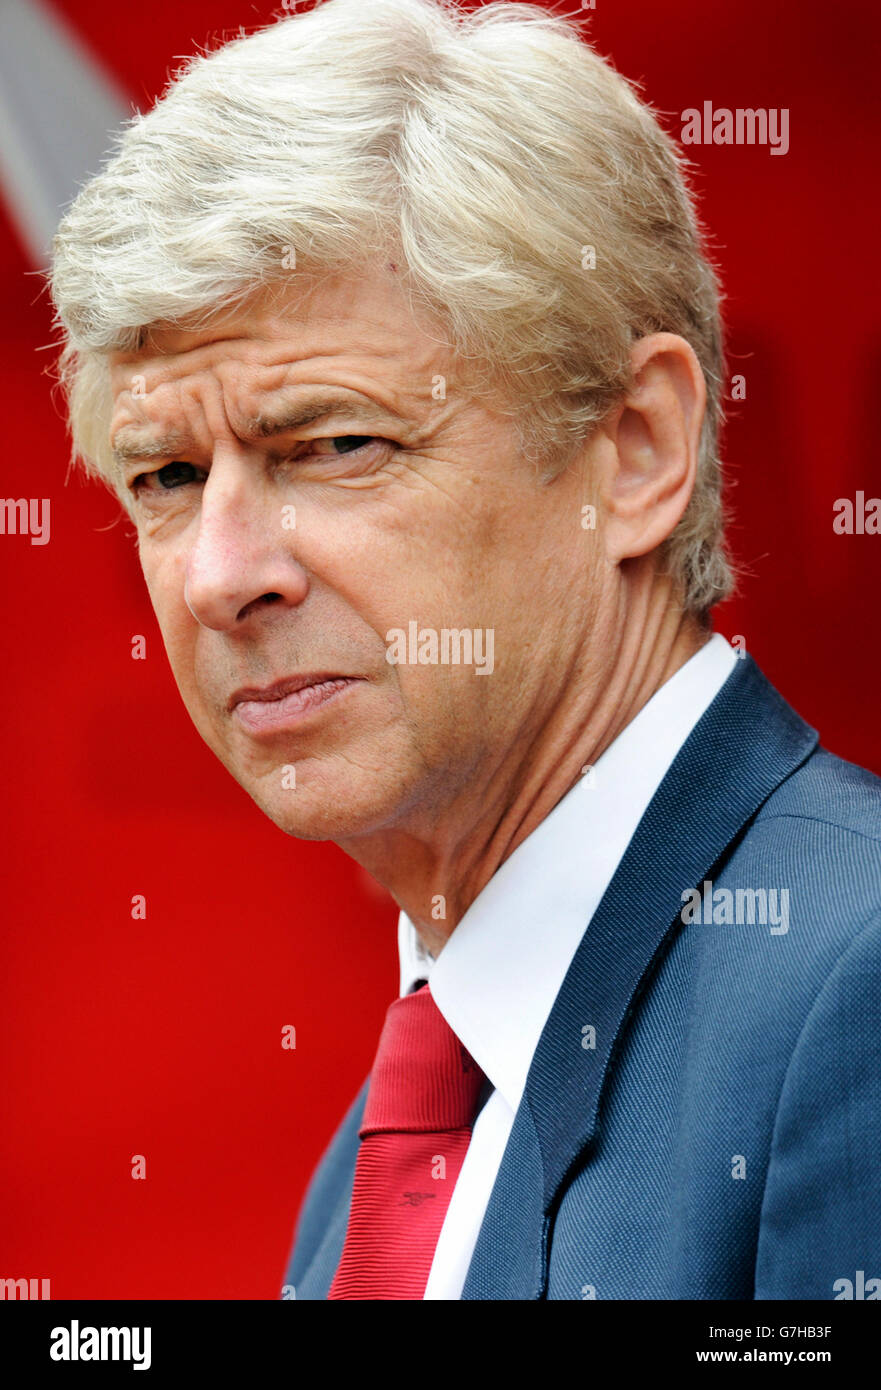 Arsene Wenger, manager of Arsenal during football test match between FC Cologne 1-2 Arsenal, Rhein-Energie-Stadion, - Stock Image